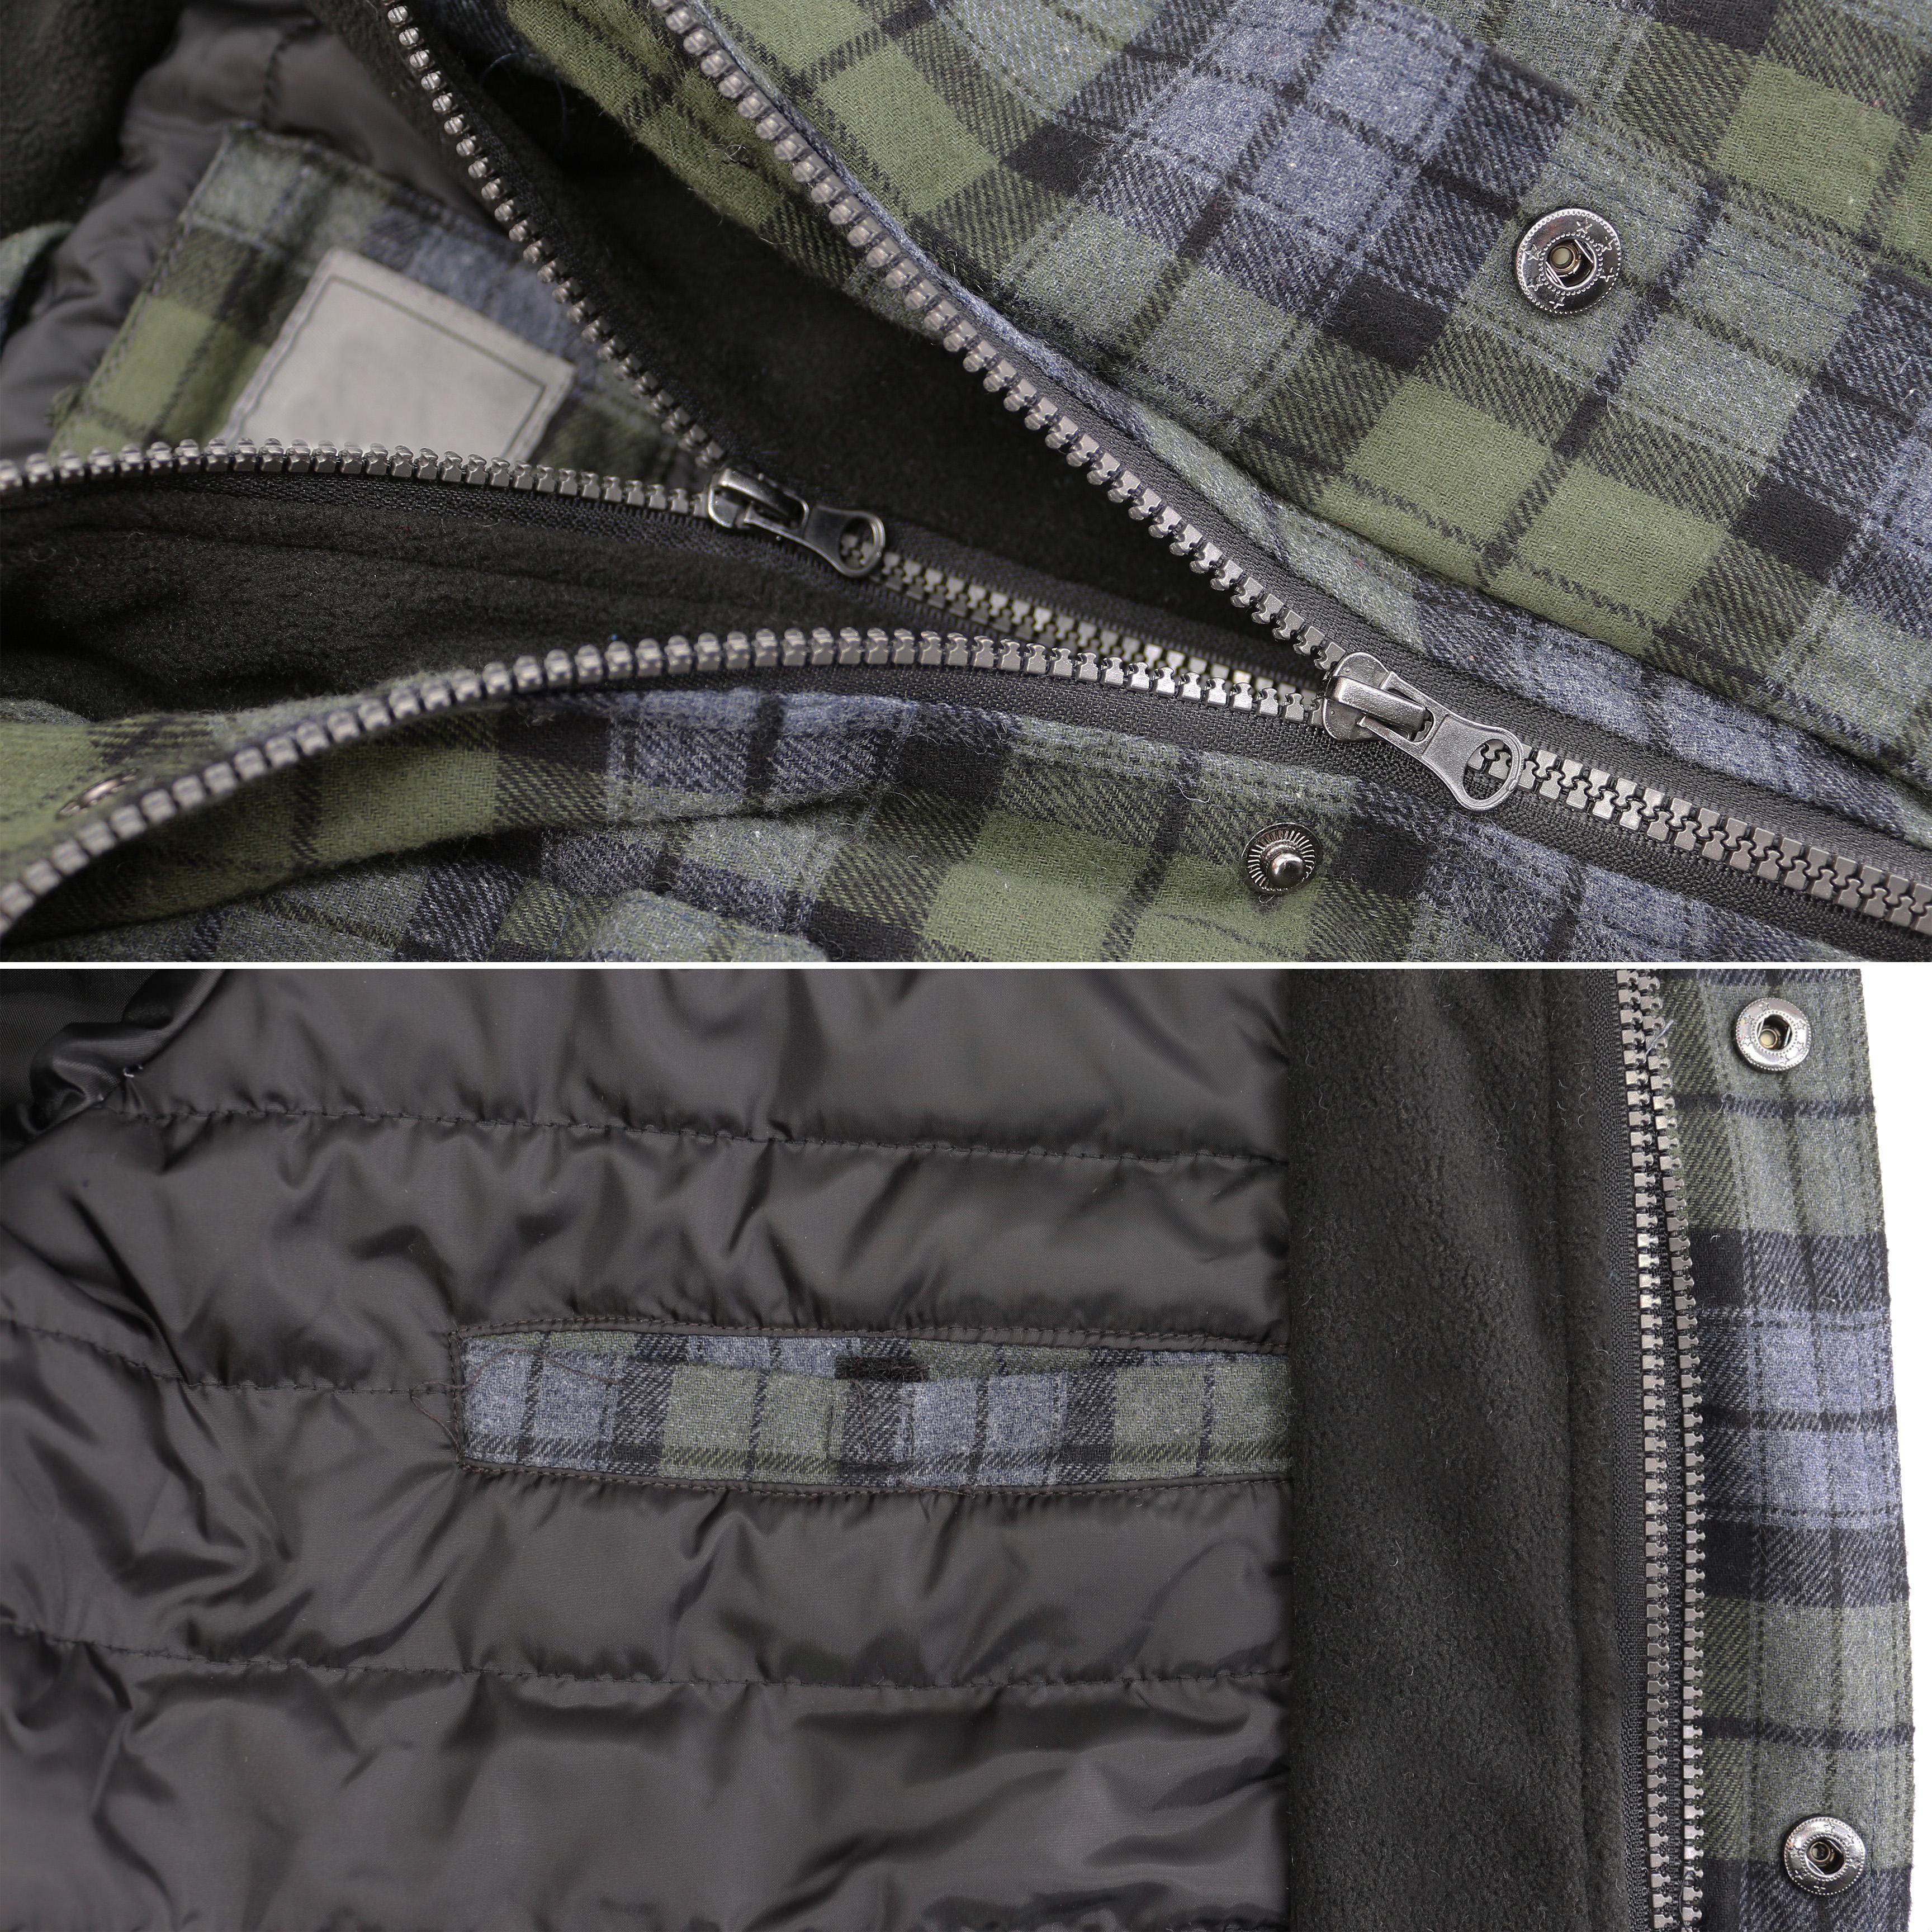 vkwear-Men-039-s-Quilted-Lined-Cotton-Plaid-Flannel-Layered-Zip-Up-Hoodie-Jacket thumbnail 8